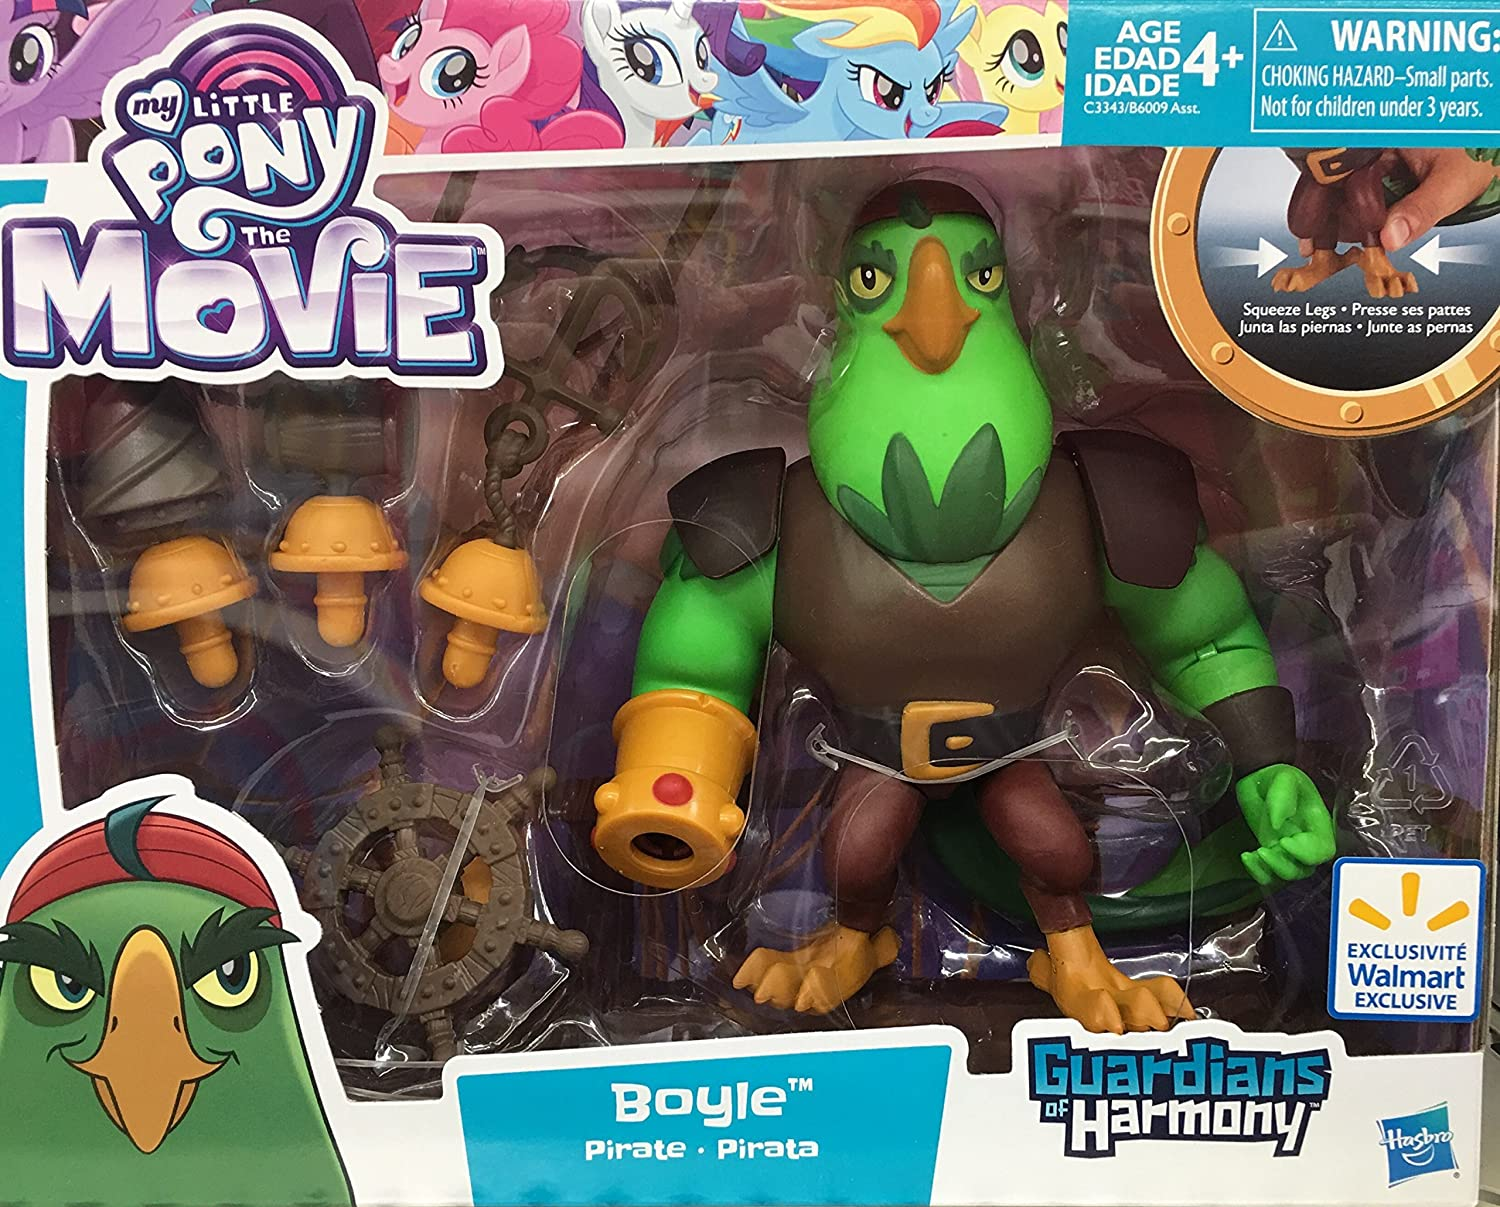 My Little Pony the Movie Guardians of Harmony Pirate Boyle New in Box